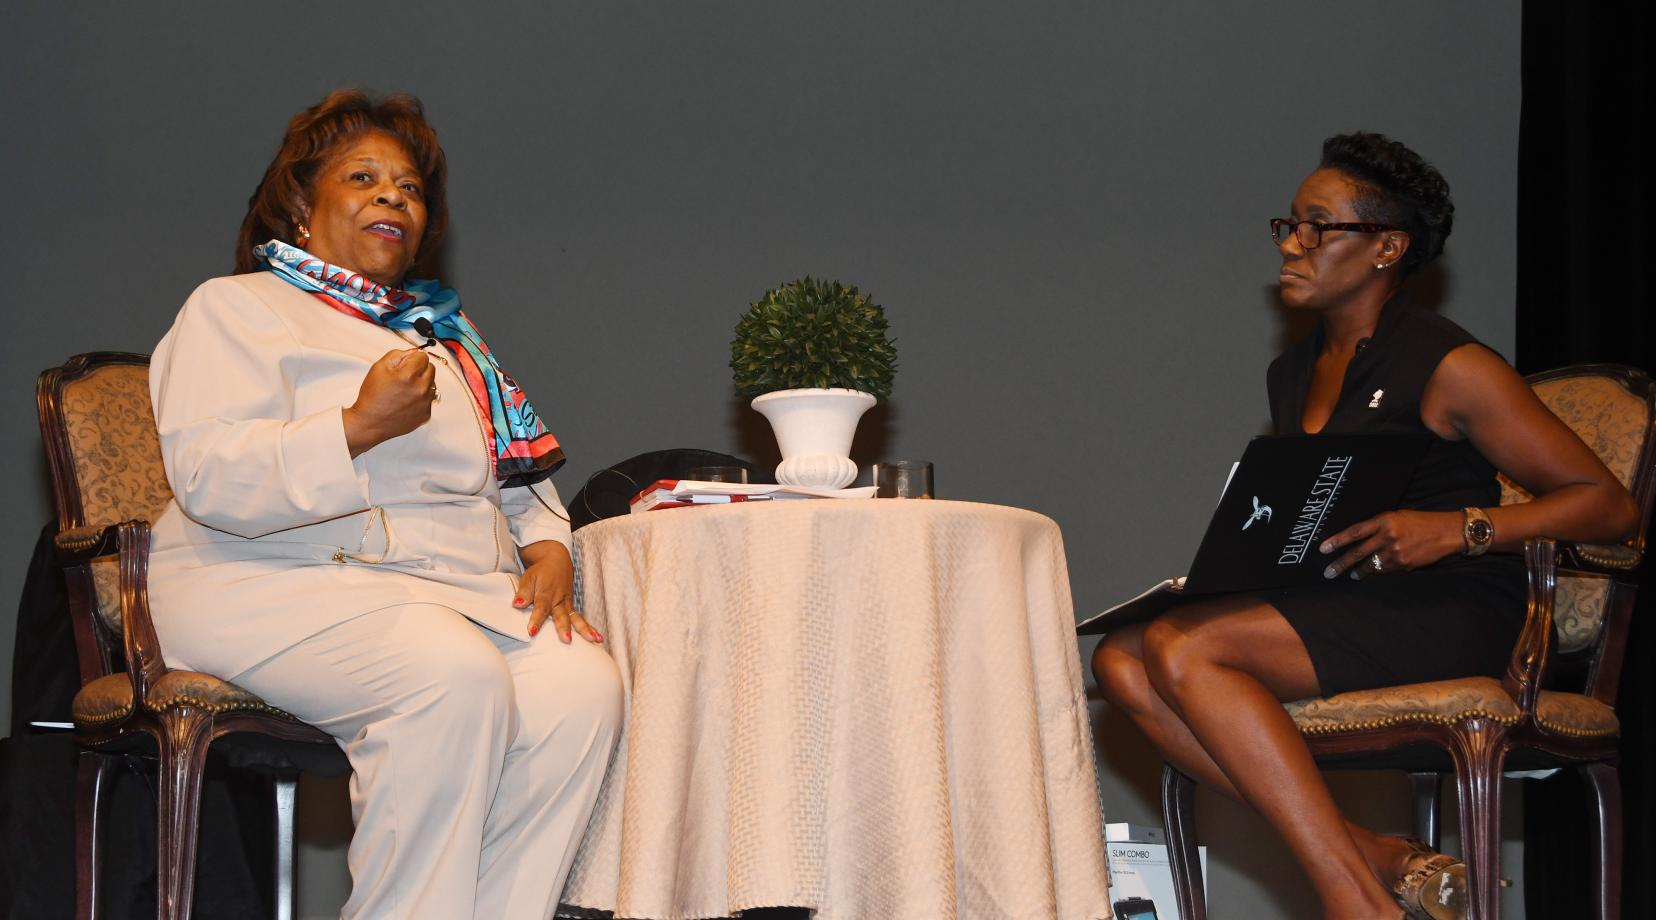 <p>DSU President Wilma Mishoe (L) shares her vision and priorities for the University during the Q&A portion the Faculty Opening Institute, facilitated by Dr. Francine Edwards, dean of the College of Humanities, Education and Social Sciences.</p>